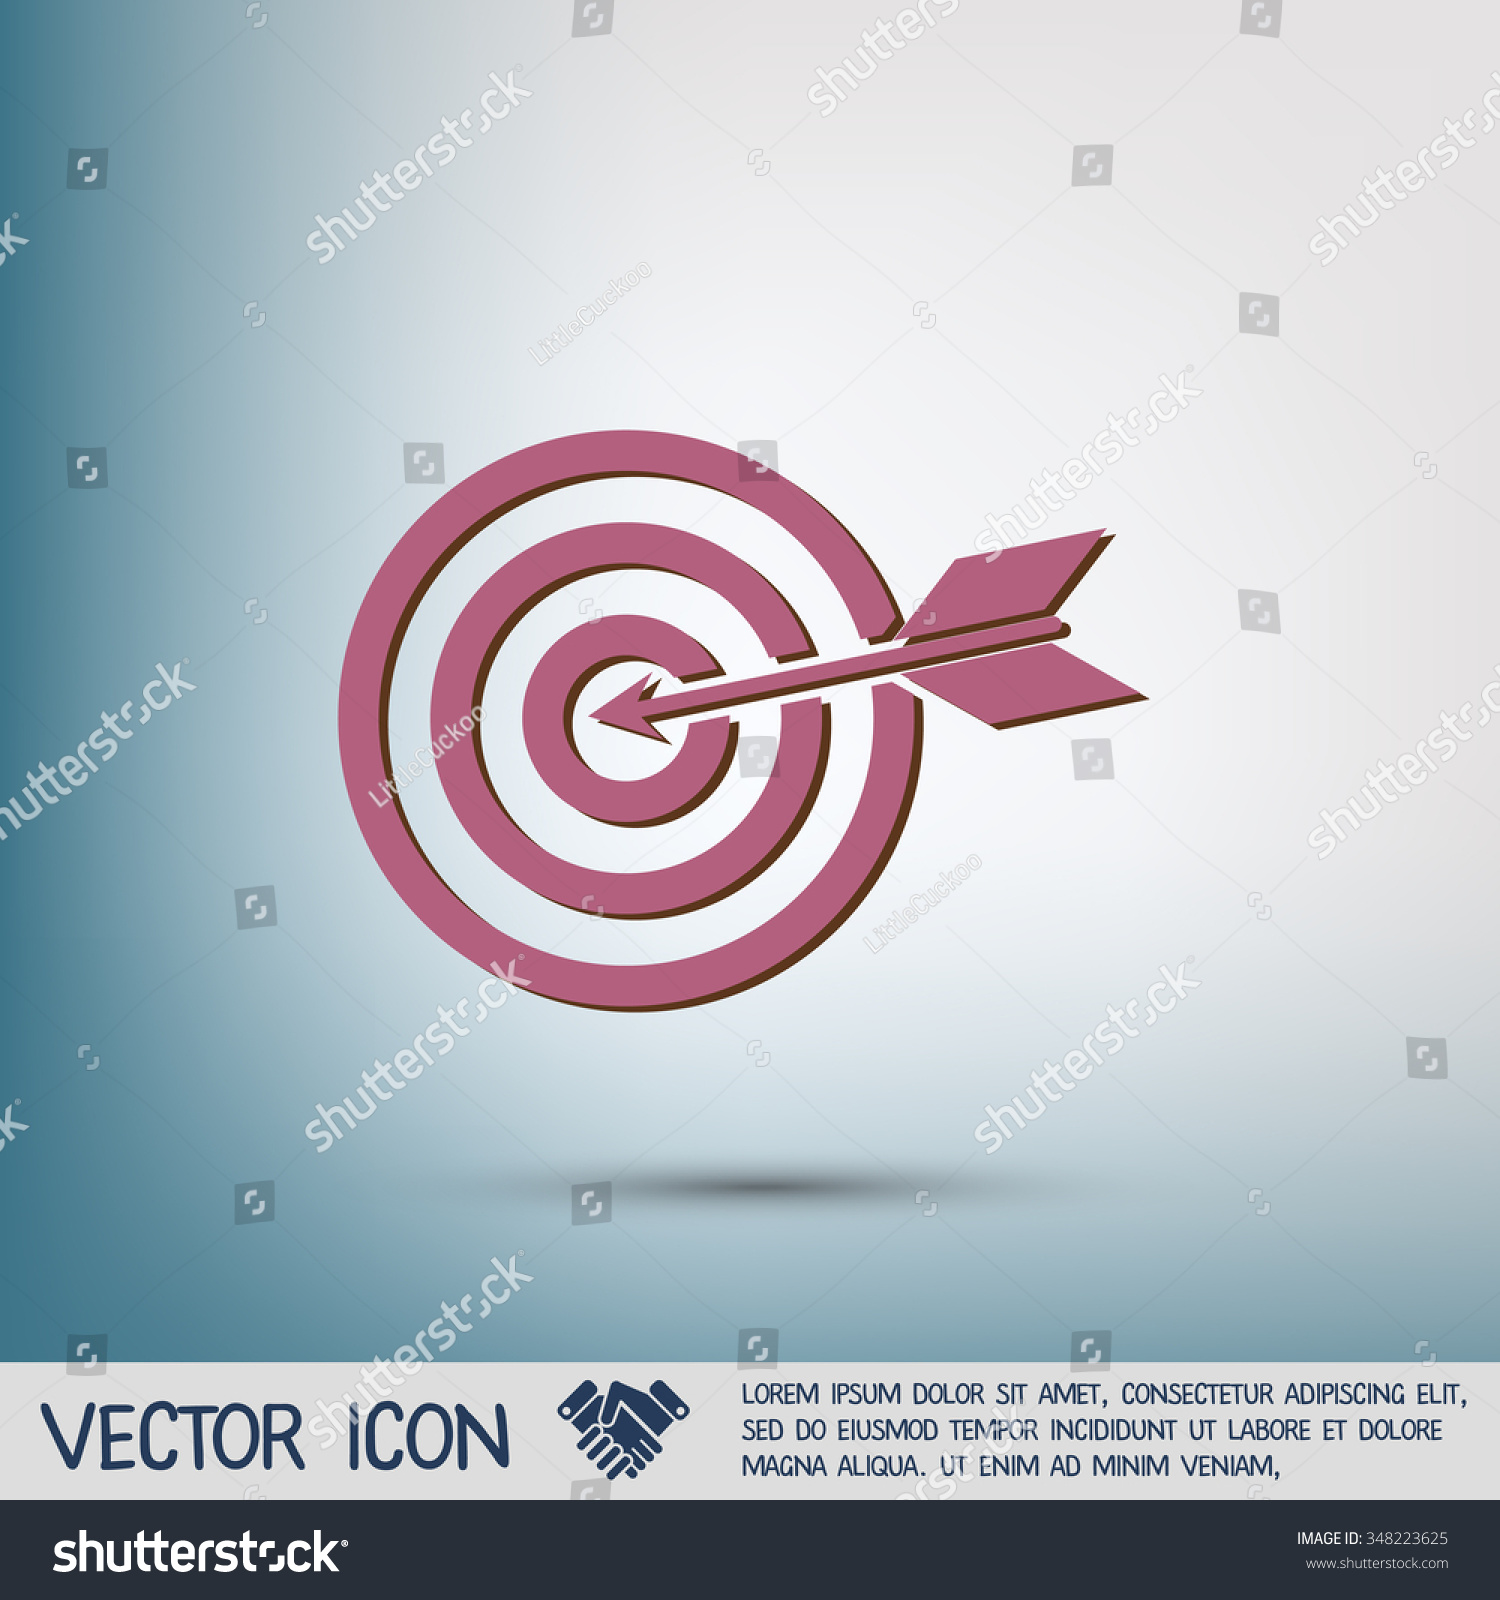 Target symbol sporty character hit target stock vector 348223625 target symbol sporty character hit target stock vector 348223625 shutterstock buycottarizona Image collections